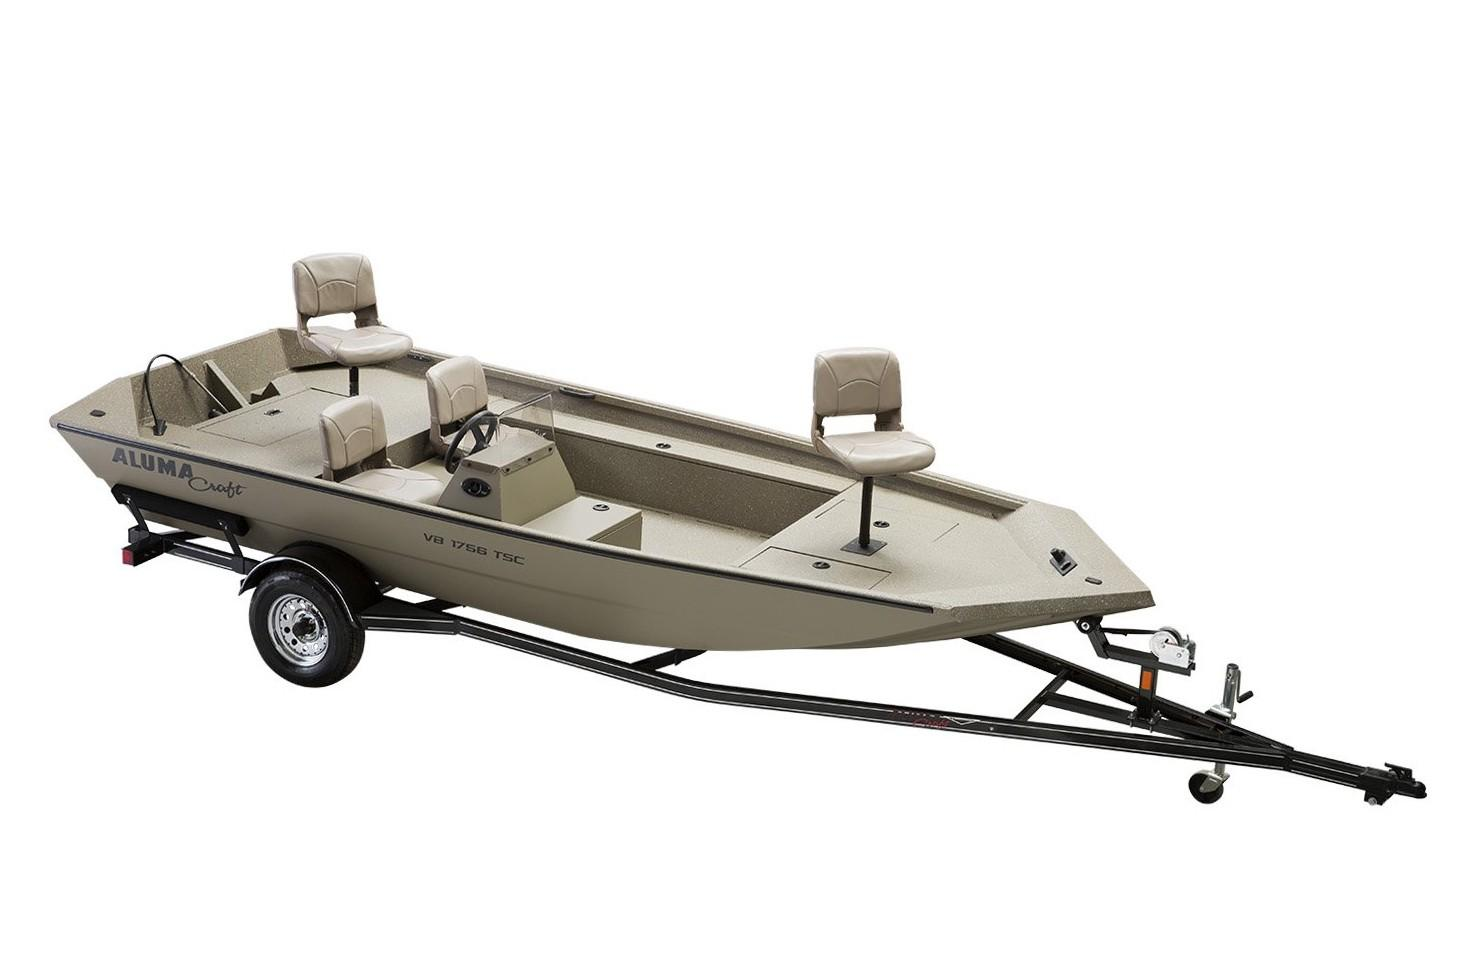 2019 Alumacraft MV 1756 AW SC in Lakeport, California